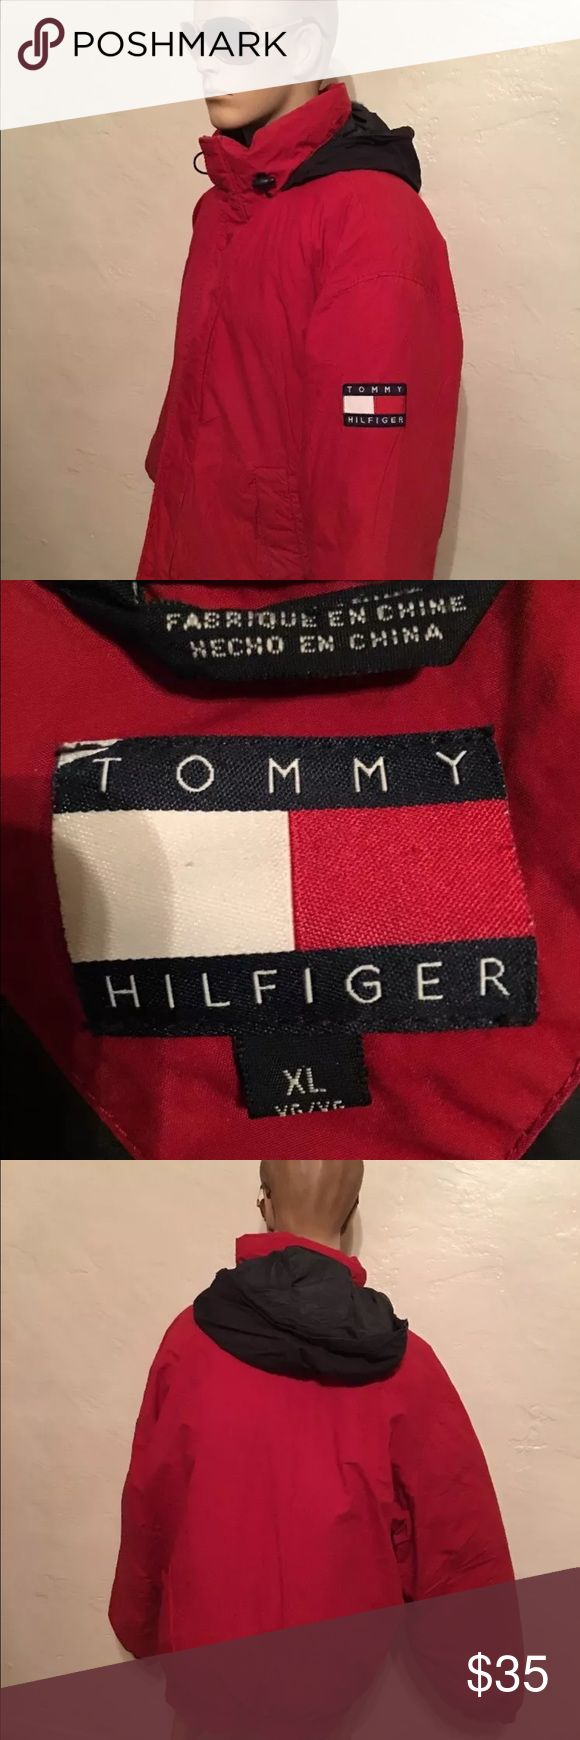 MENS TOMMY HILFIGER 90s VINTAGE DOWN COT JACKET XL AWESOME VINTAGE 1990s TOMMY HILFIGER DOWN JACKET ...COTTON SHELL WITH 60% DOWN FILLING AND 40% FEATHERS. PREOWNED AND WORN MINOR COSMETIC WEAR FRONT ZIPS AND SNAPS SEE PHOTOS TOMMY HILFIGER Jackets & Coats Bomber & Varsity